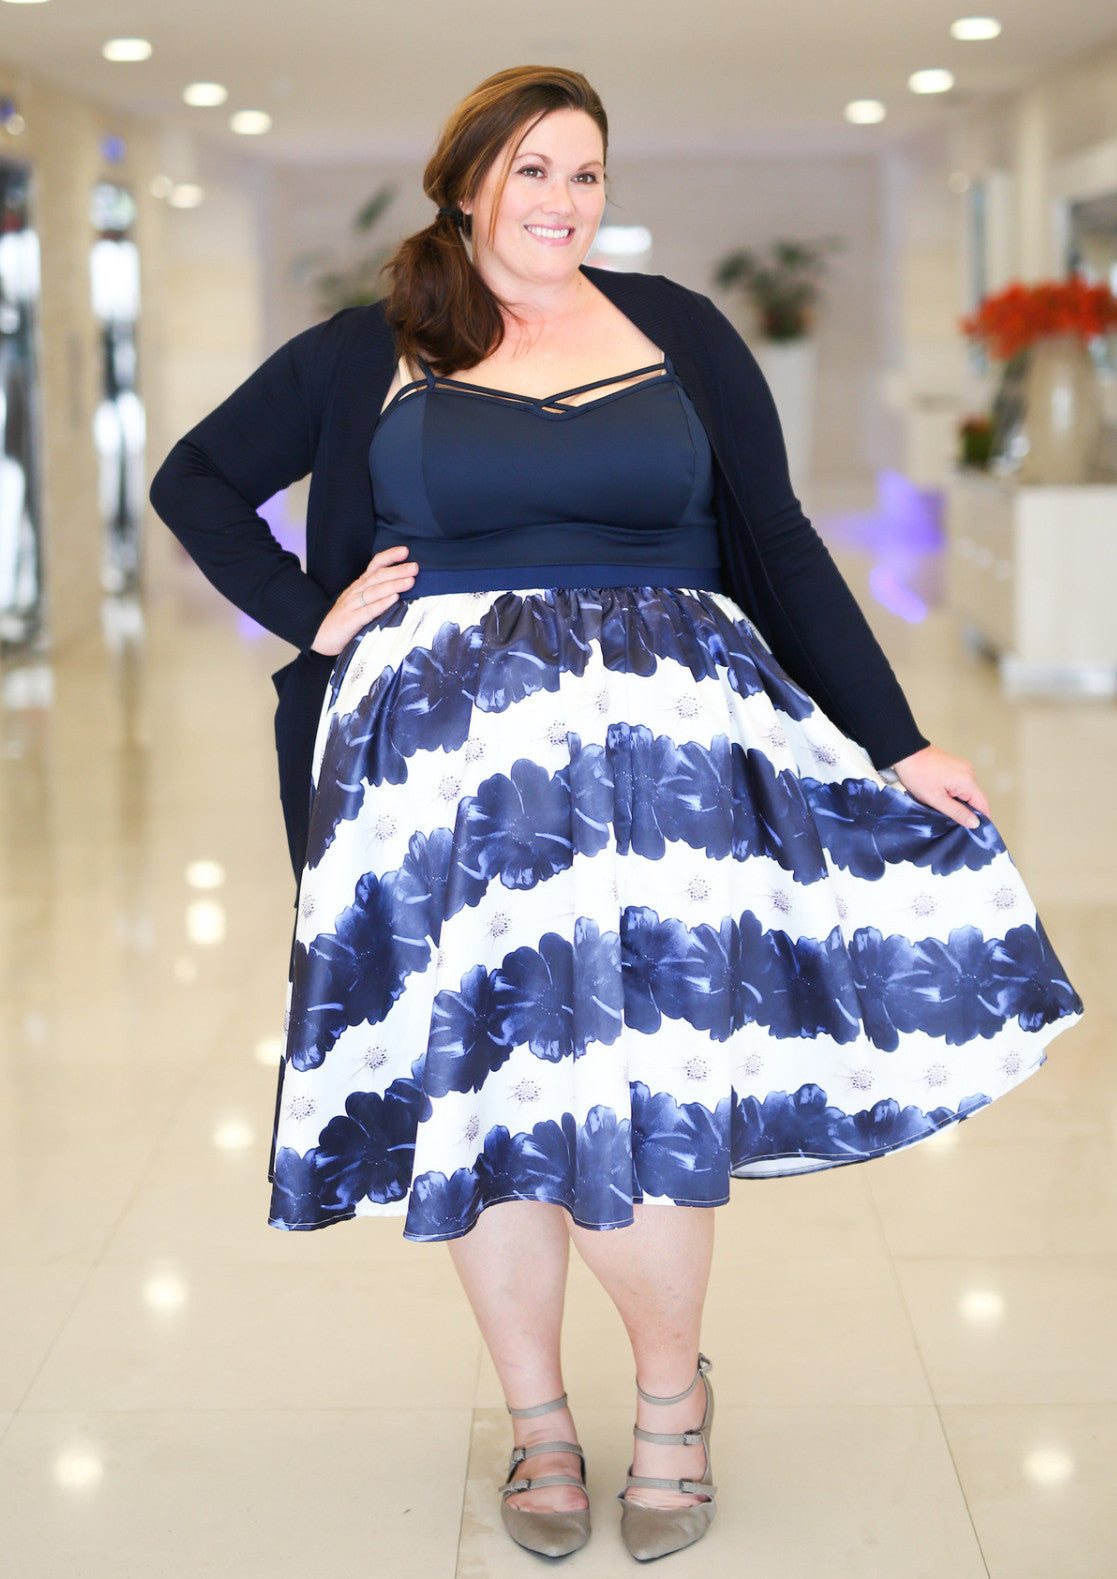 Plus Size Clothing for Women - Soiree Midi Skirt - Blue/White Floral Stripe-Hold for Stitch Fix - Society+ - Society Plus - Buy Online Now! - 2